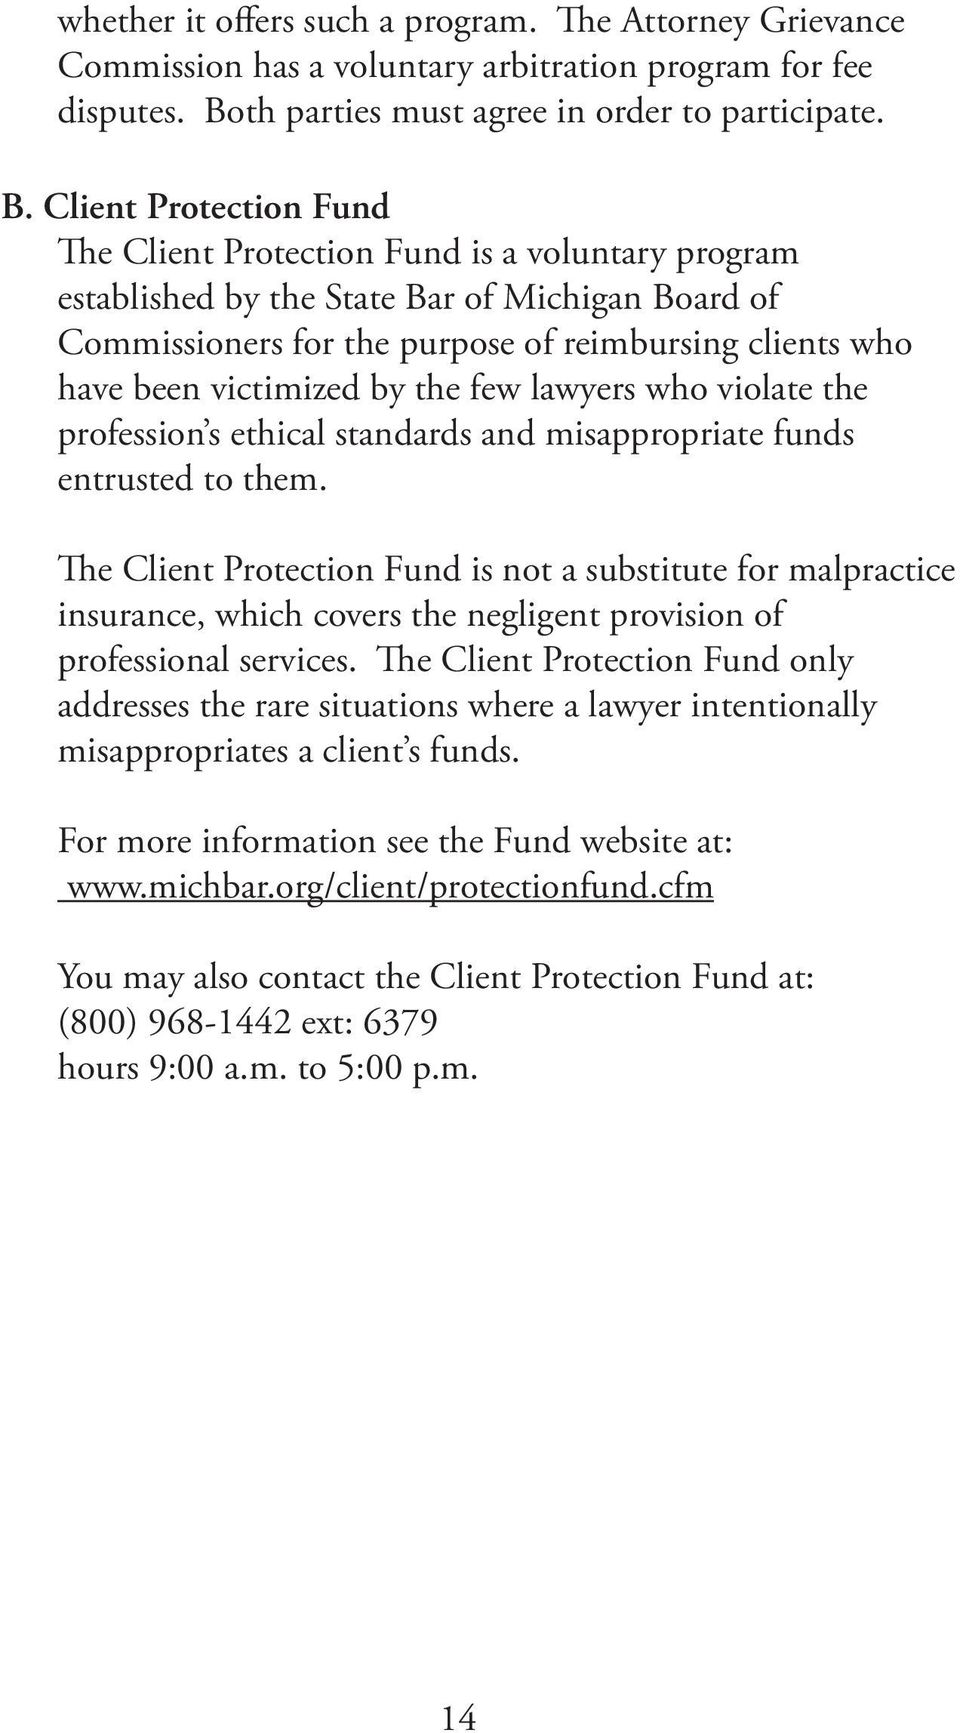 Client Protection Fund The Client Protection Fund is a voluntary program established by the State Bar of Michigan Board of Commissioners for the purpose of reimbursing clients who have been